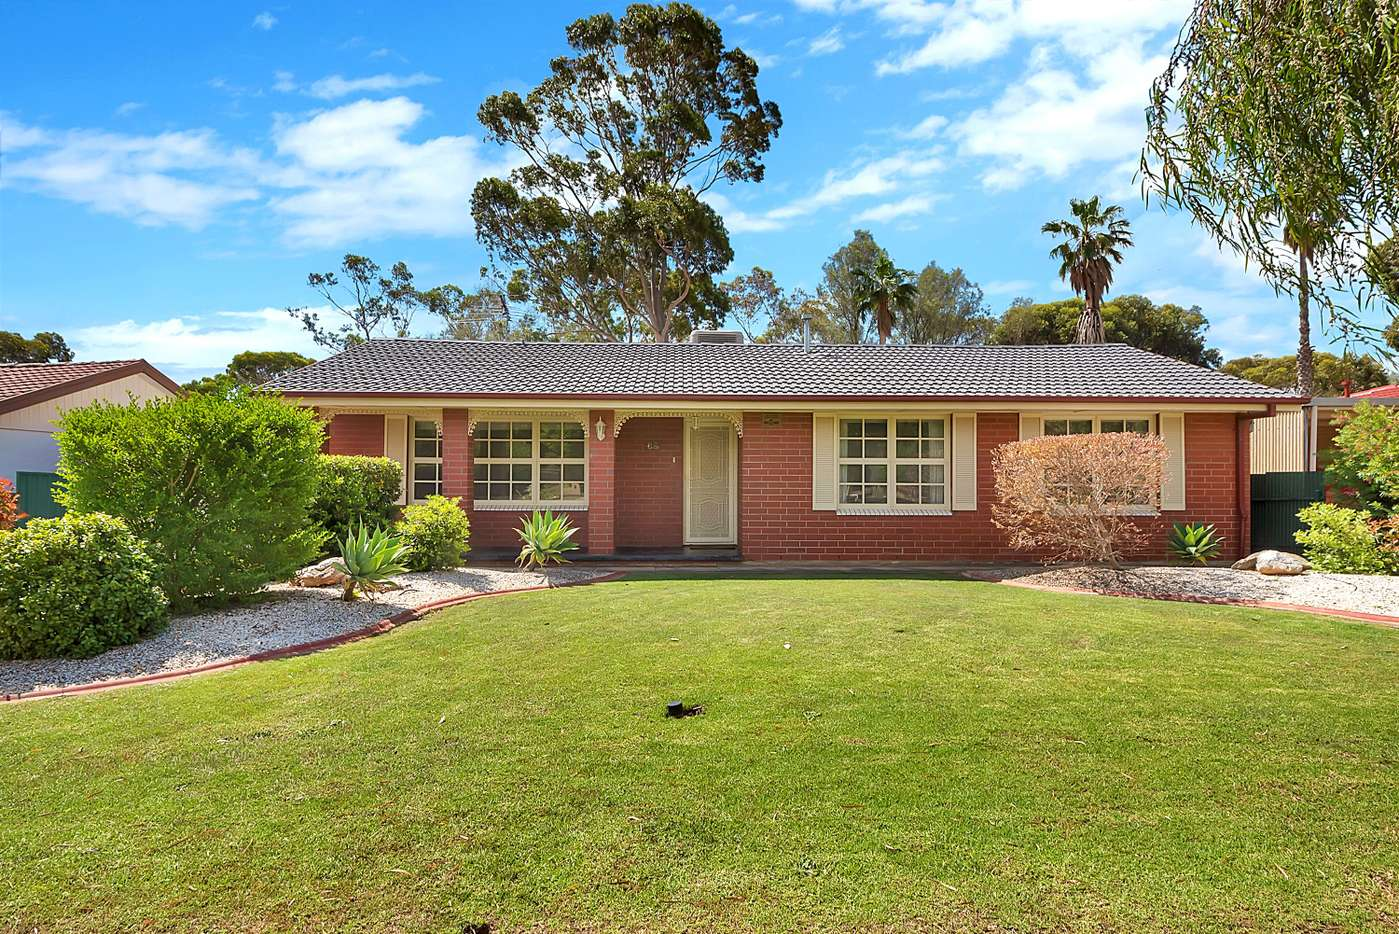 Main view of Homely house listing, 68 Heysen Avenue, Hope Valley, SA 5090